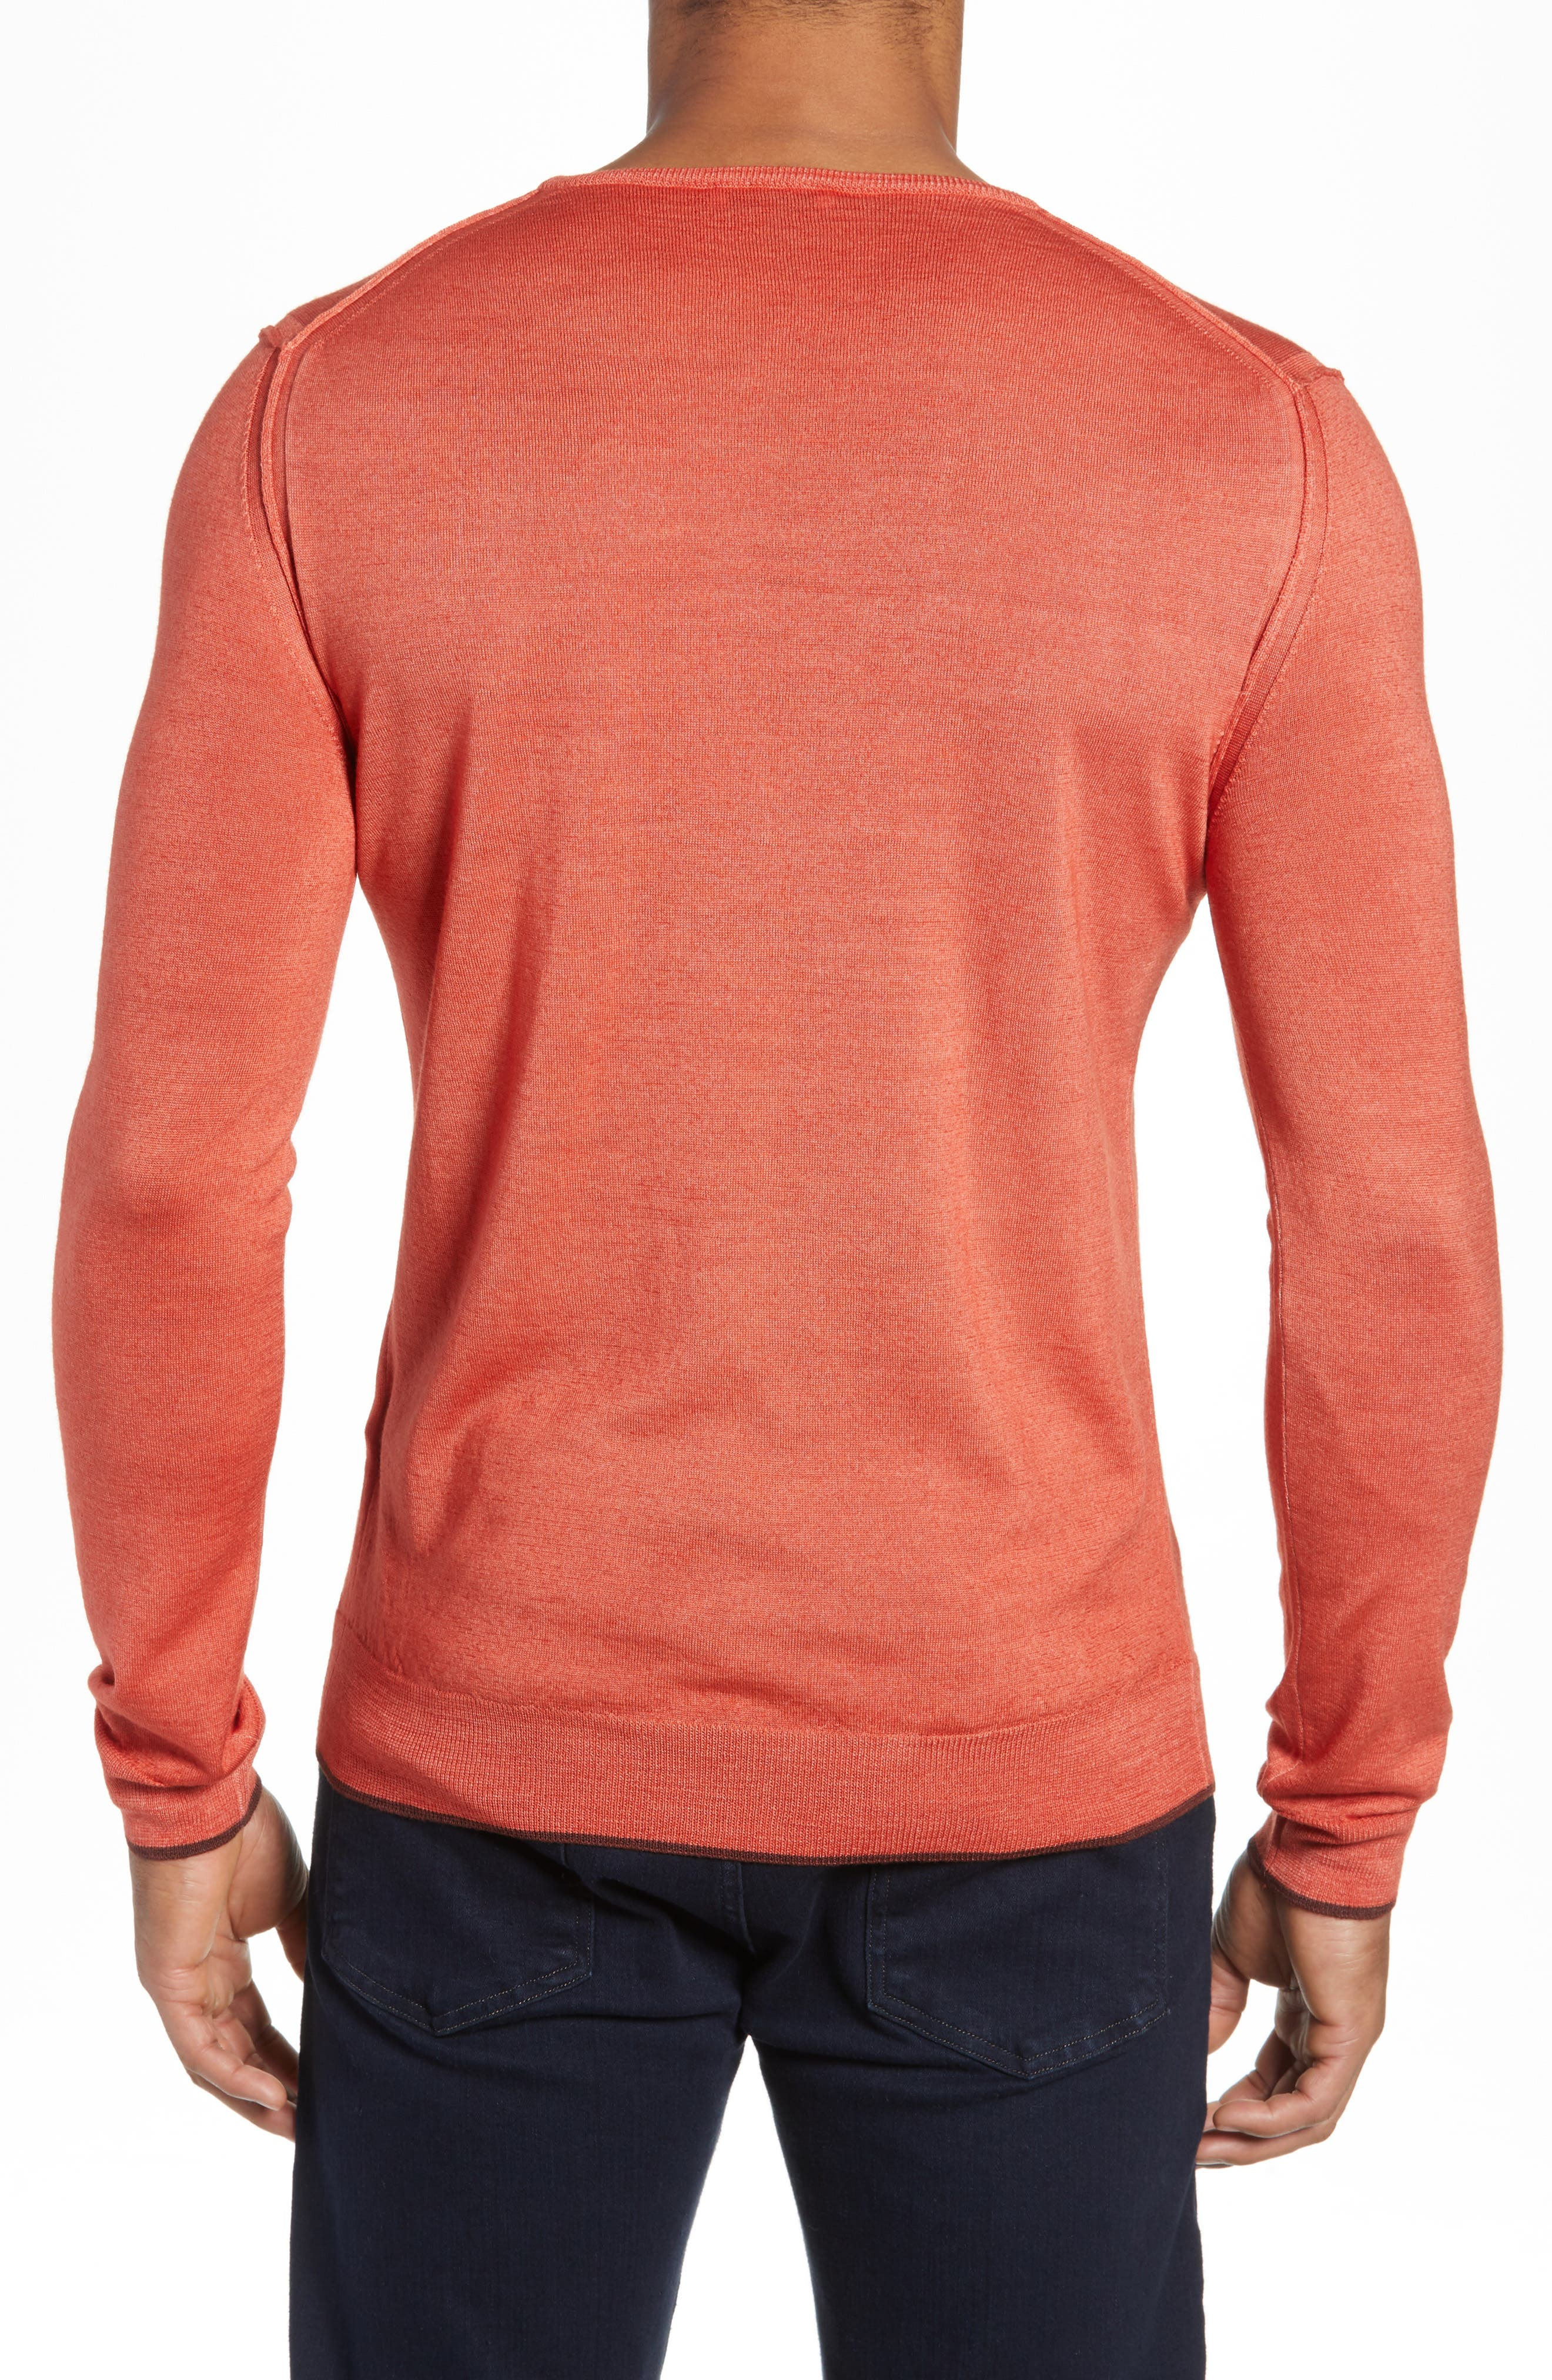 Trim Fit Crewneck Wool Sweater,                             Alternate thumbnail 2, color,                             ORANGE